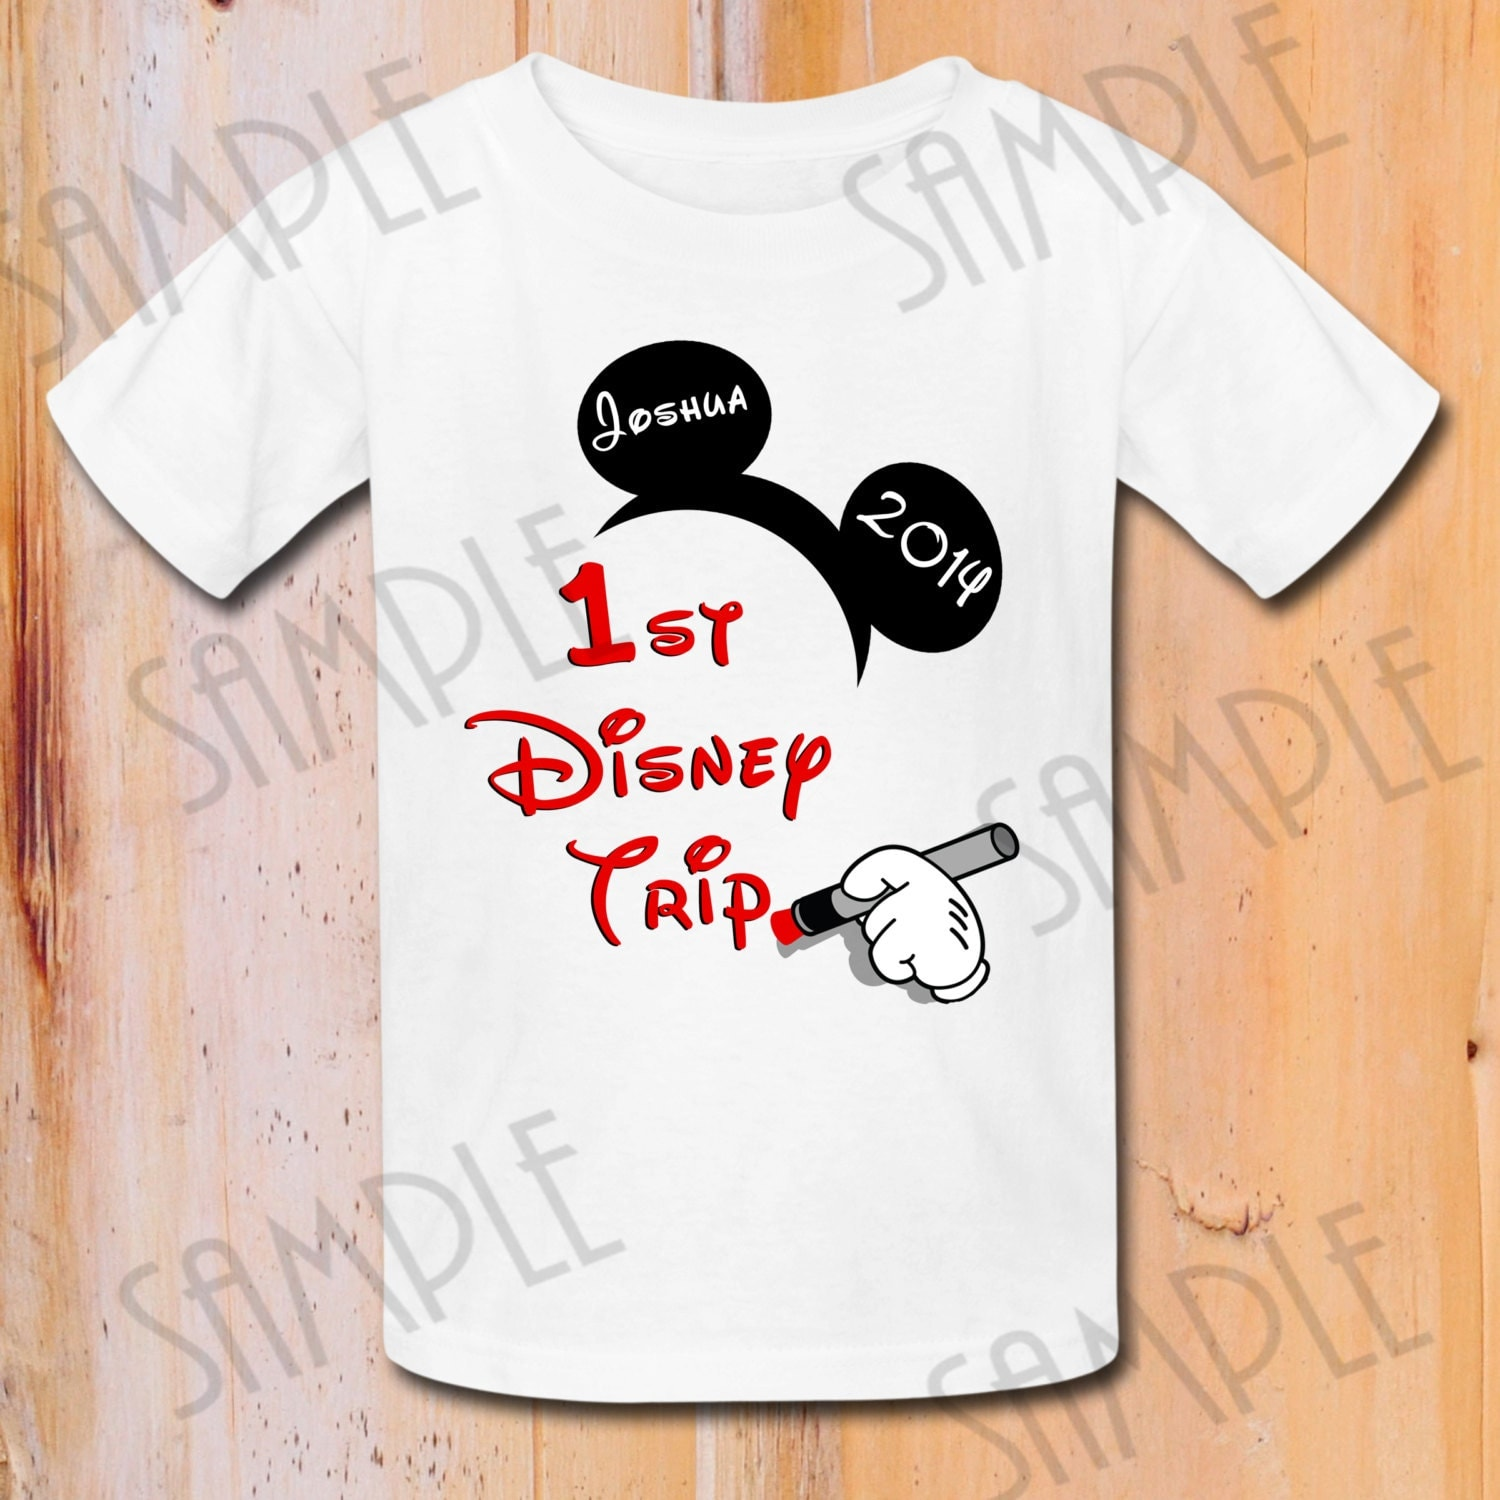 Disney Family Vacation t shirts Iron On Transfer Printable